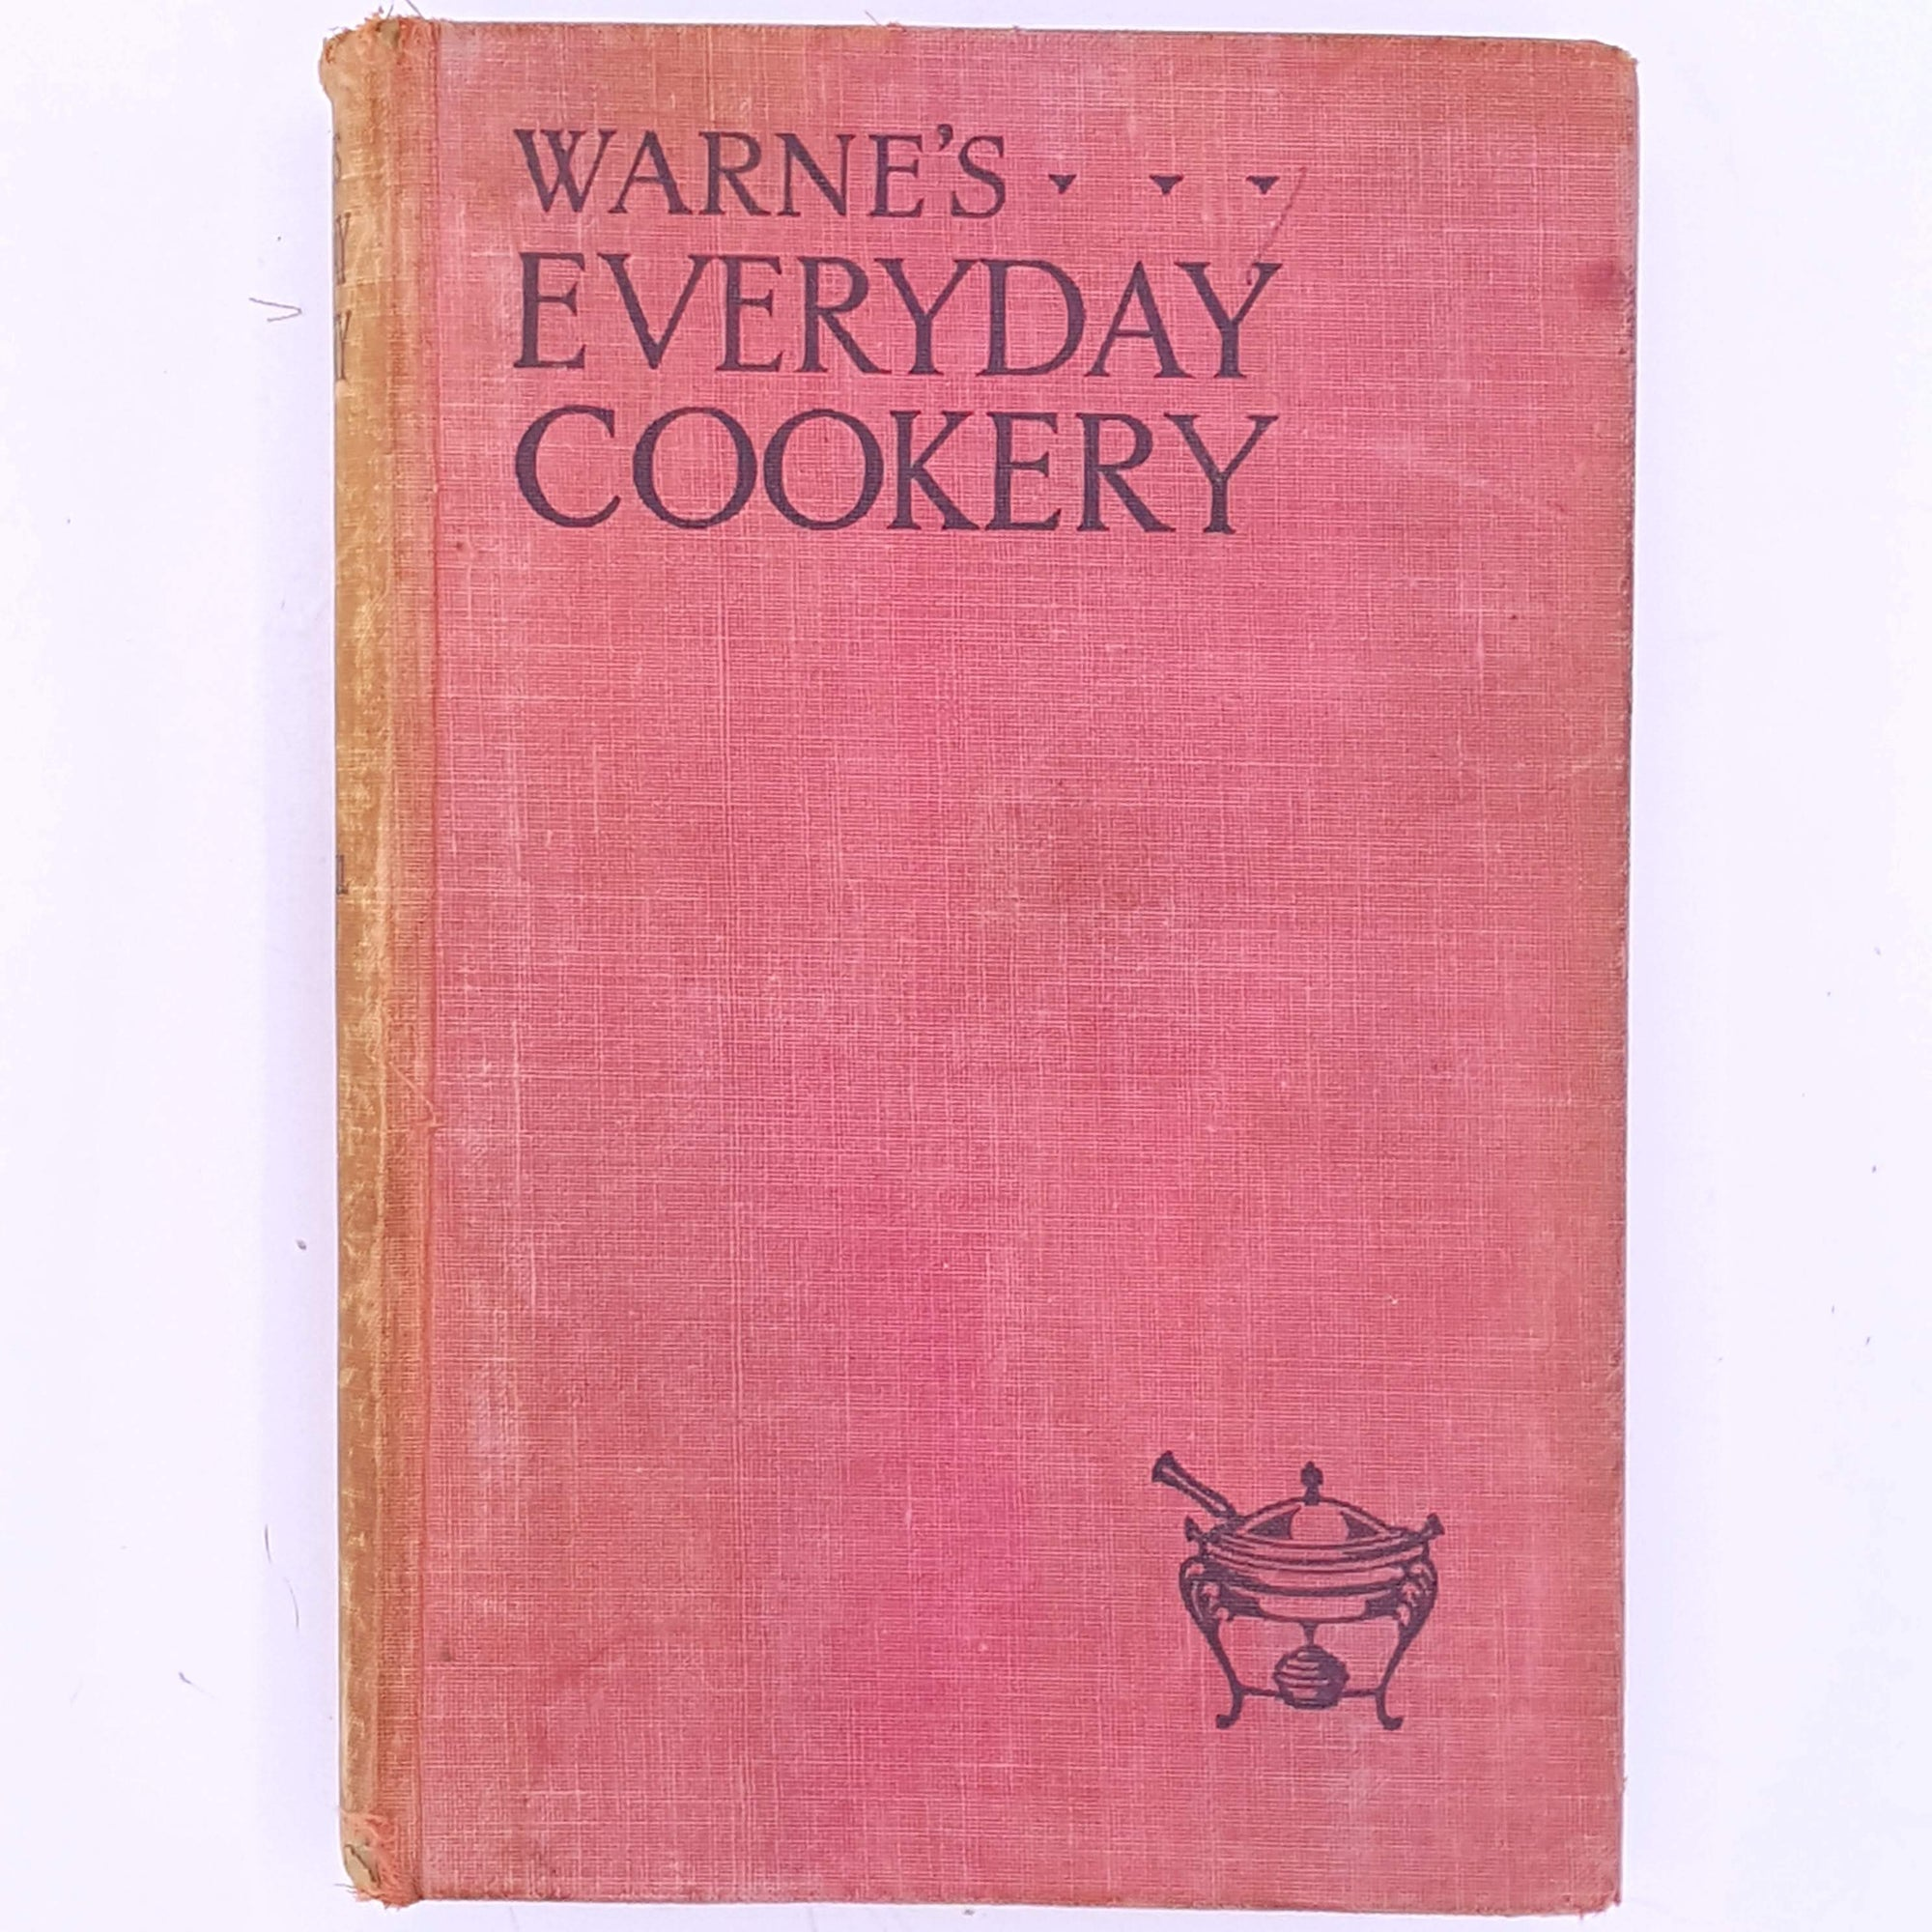 antique-old-cookbooks-baking-patterned-decorative-Warne's-Everyday-Cookery-Mrs-Mabel-Wijey-christmas gifts-thrift-recipes-cooking-vintage-for foodies-country-house-library-classic-books-